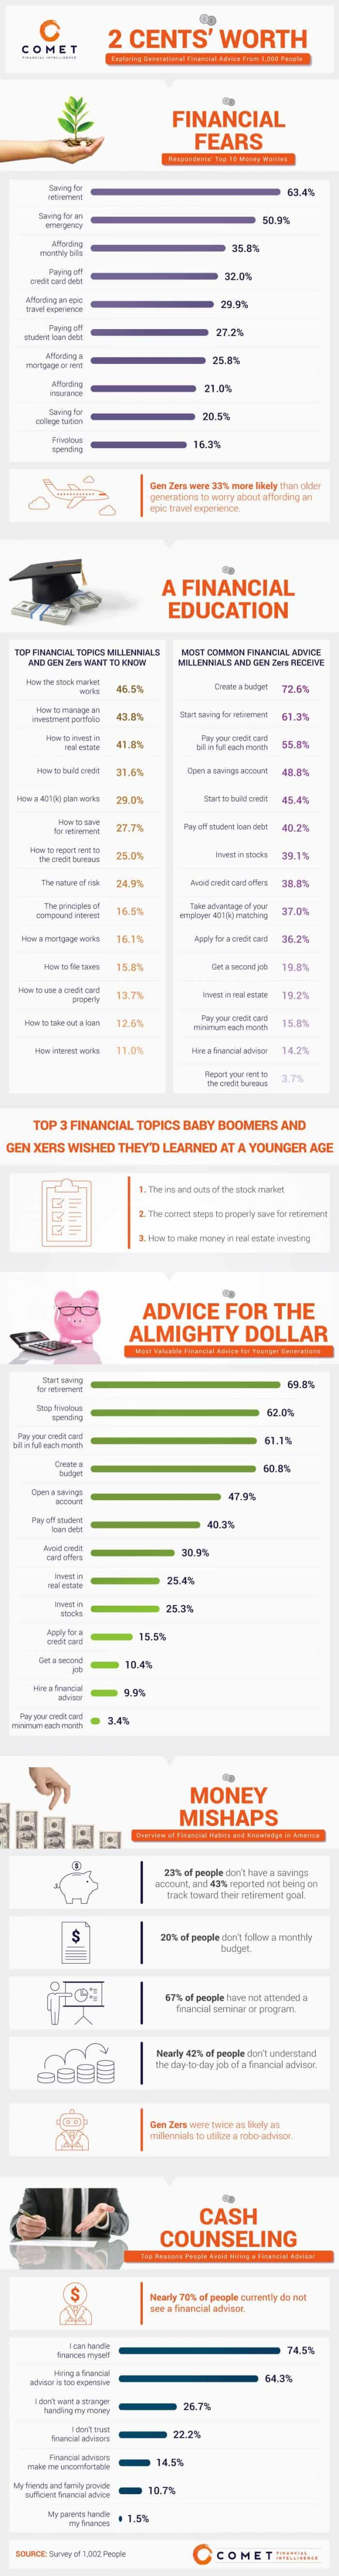 Crucial financial advice for millennials infographic.